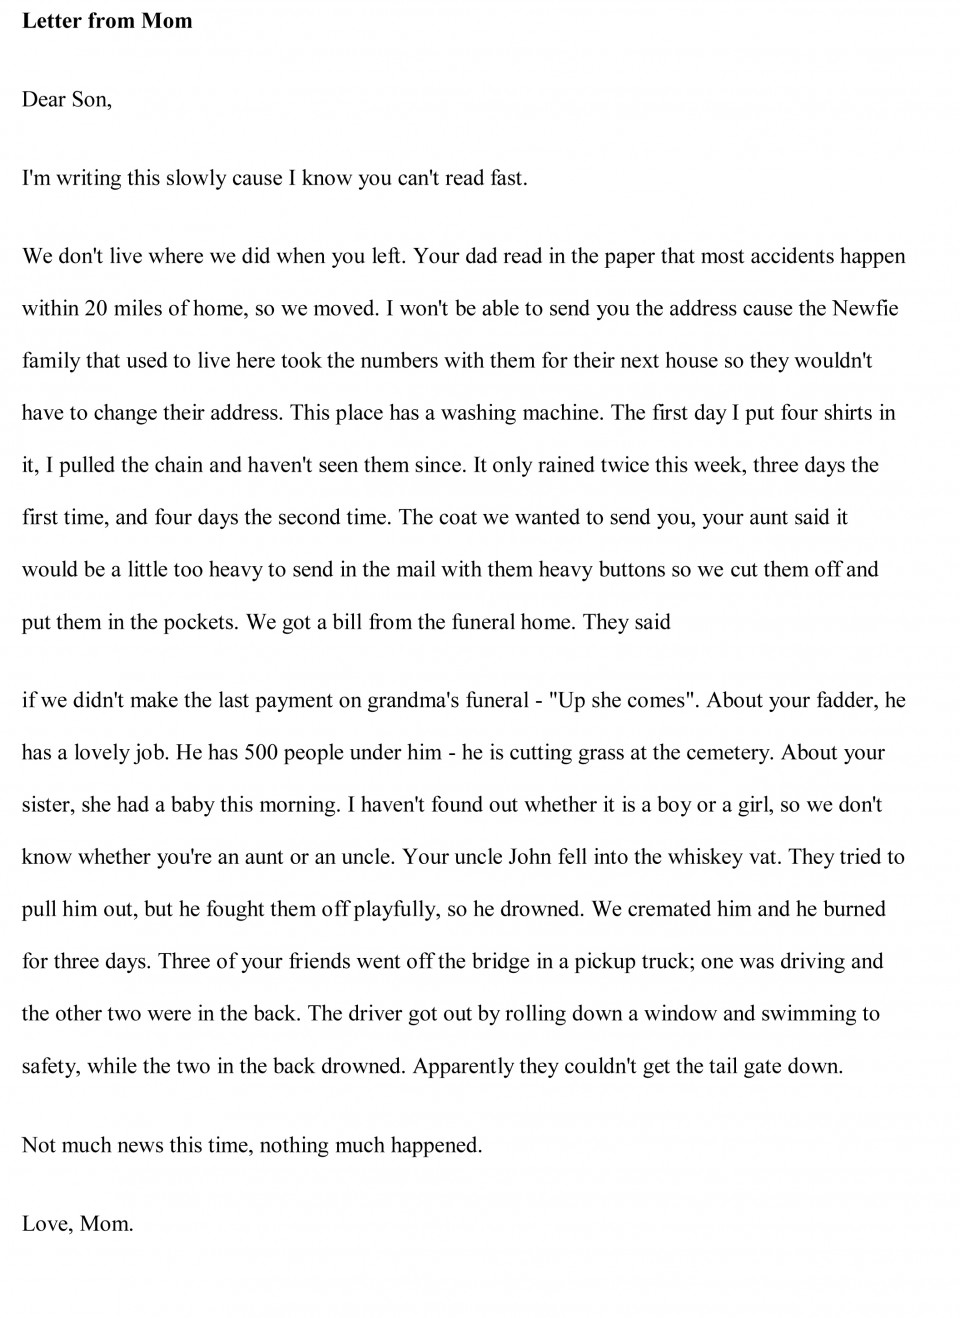 003 Essay Example Funny Essays Free Stupendous Topics Written By Students For College 960